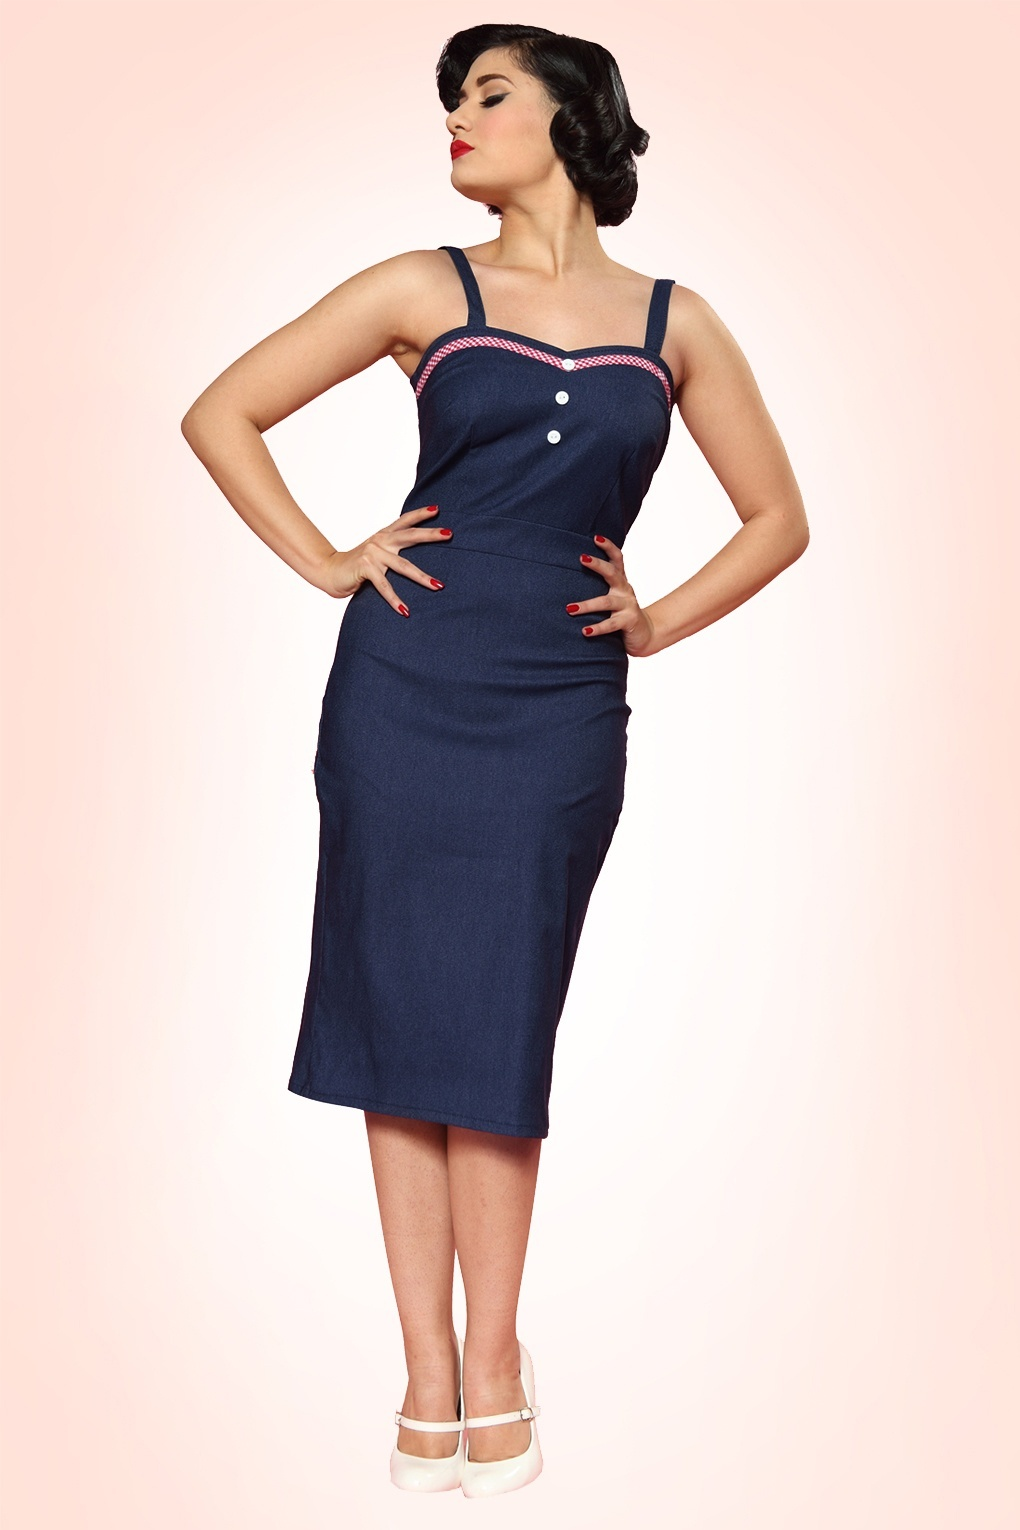 50s Betty Bakes Pencil Dress in Denim Blue